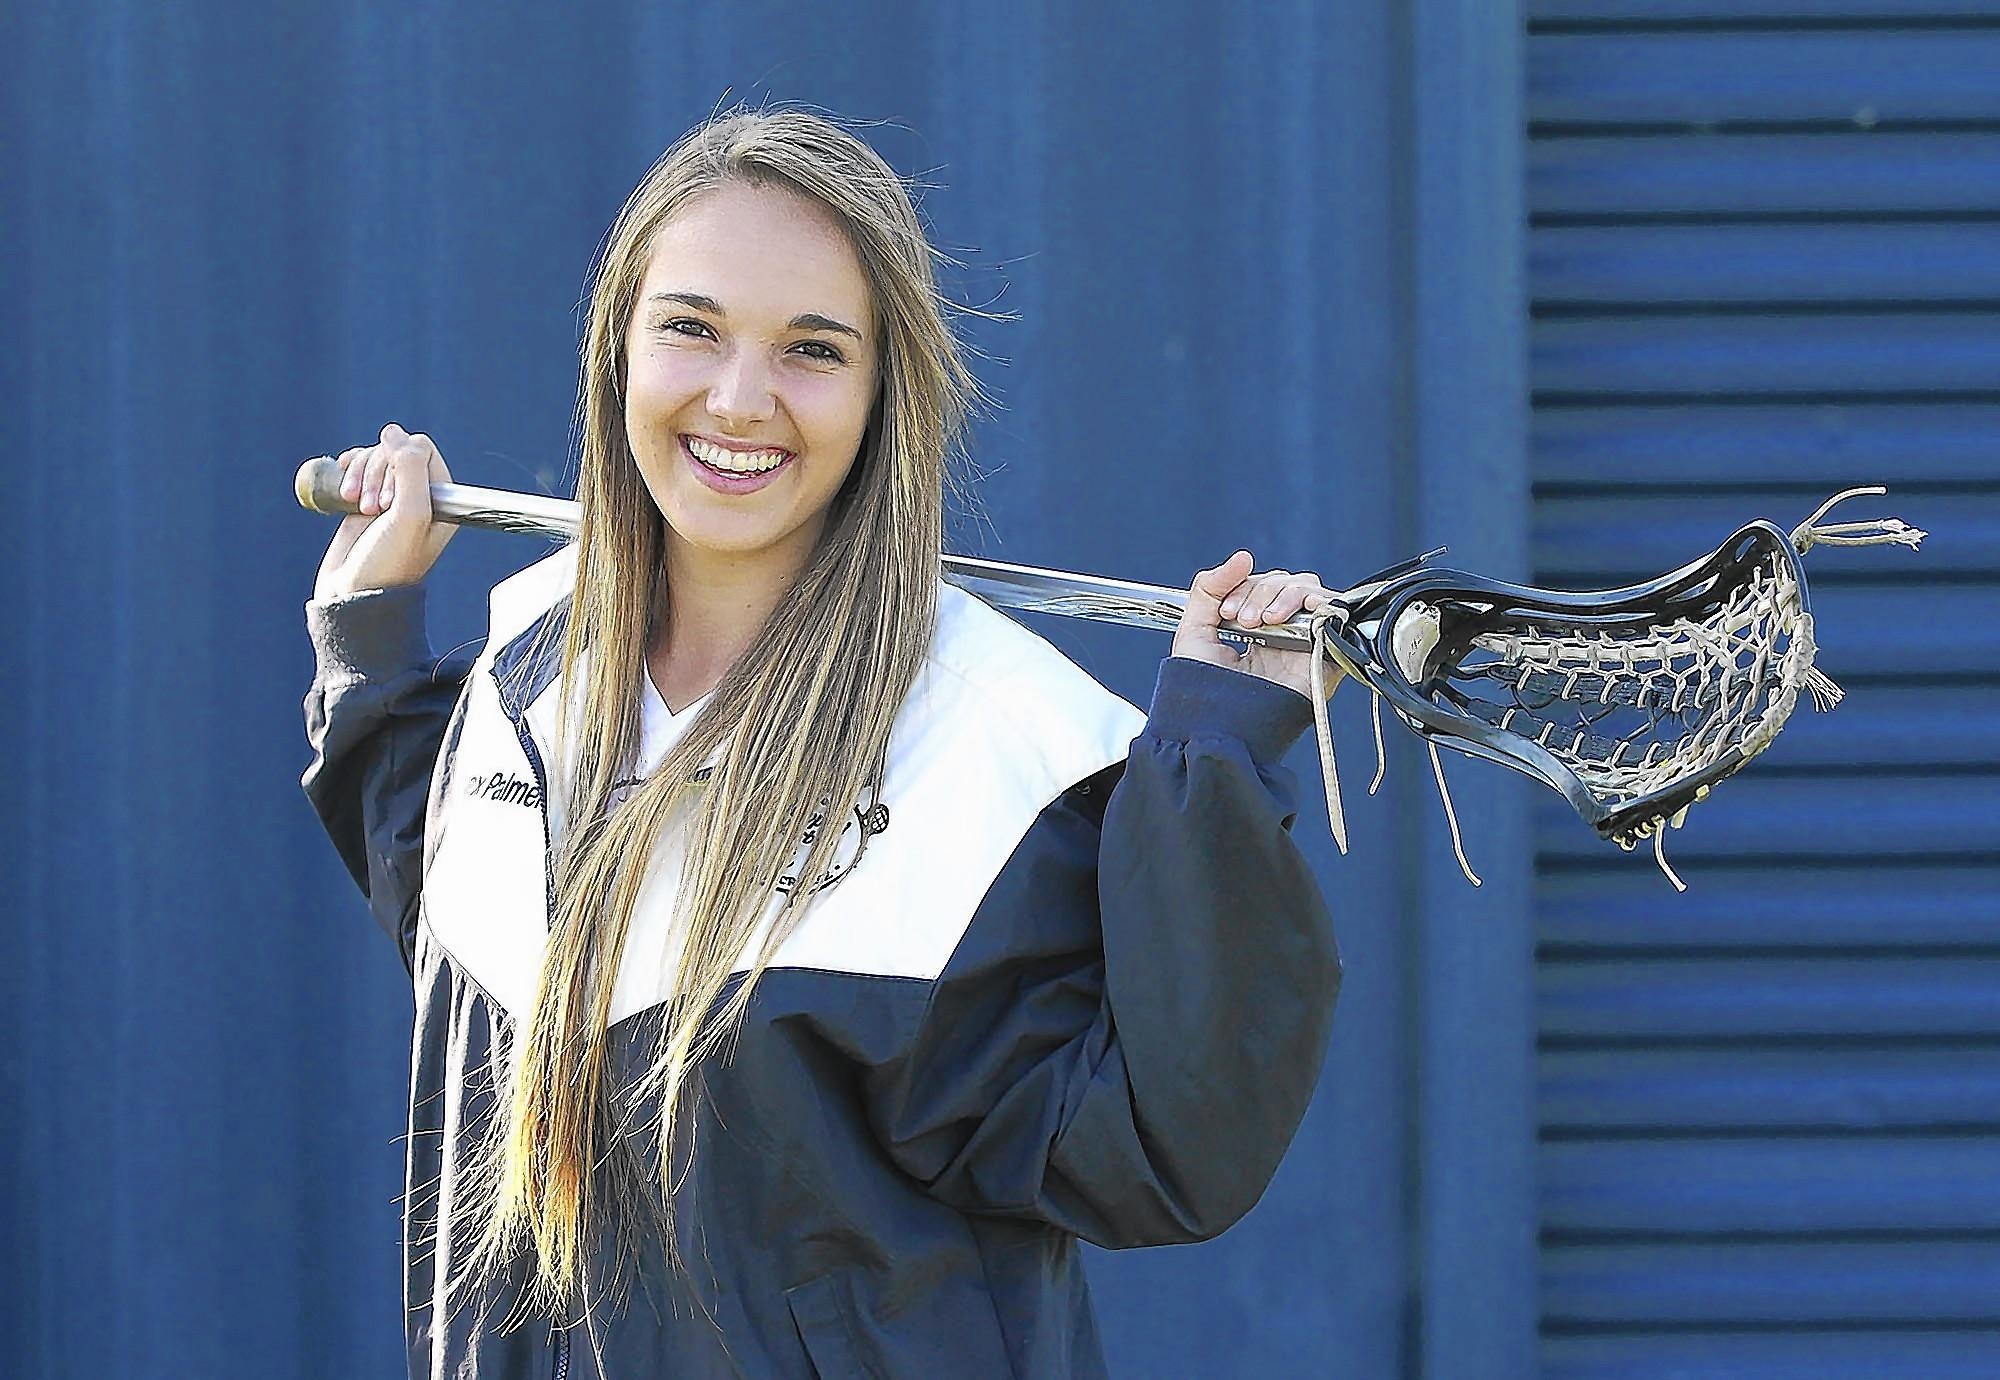 Newport Harbor High's Alex Palmer is Daily Pilot High School Athlete of the Week.